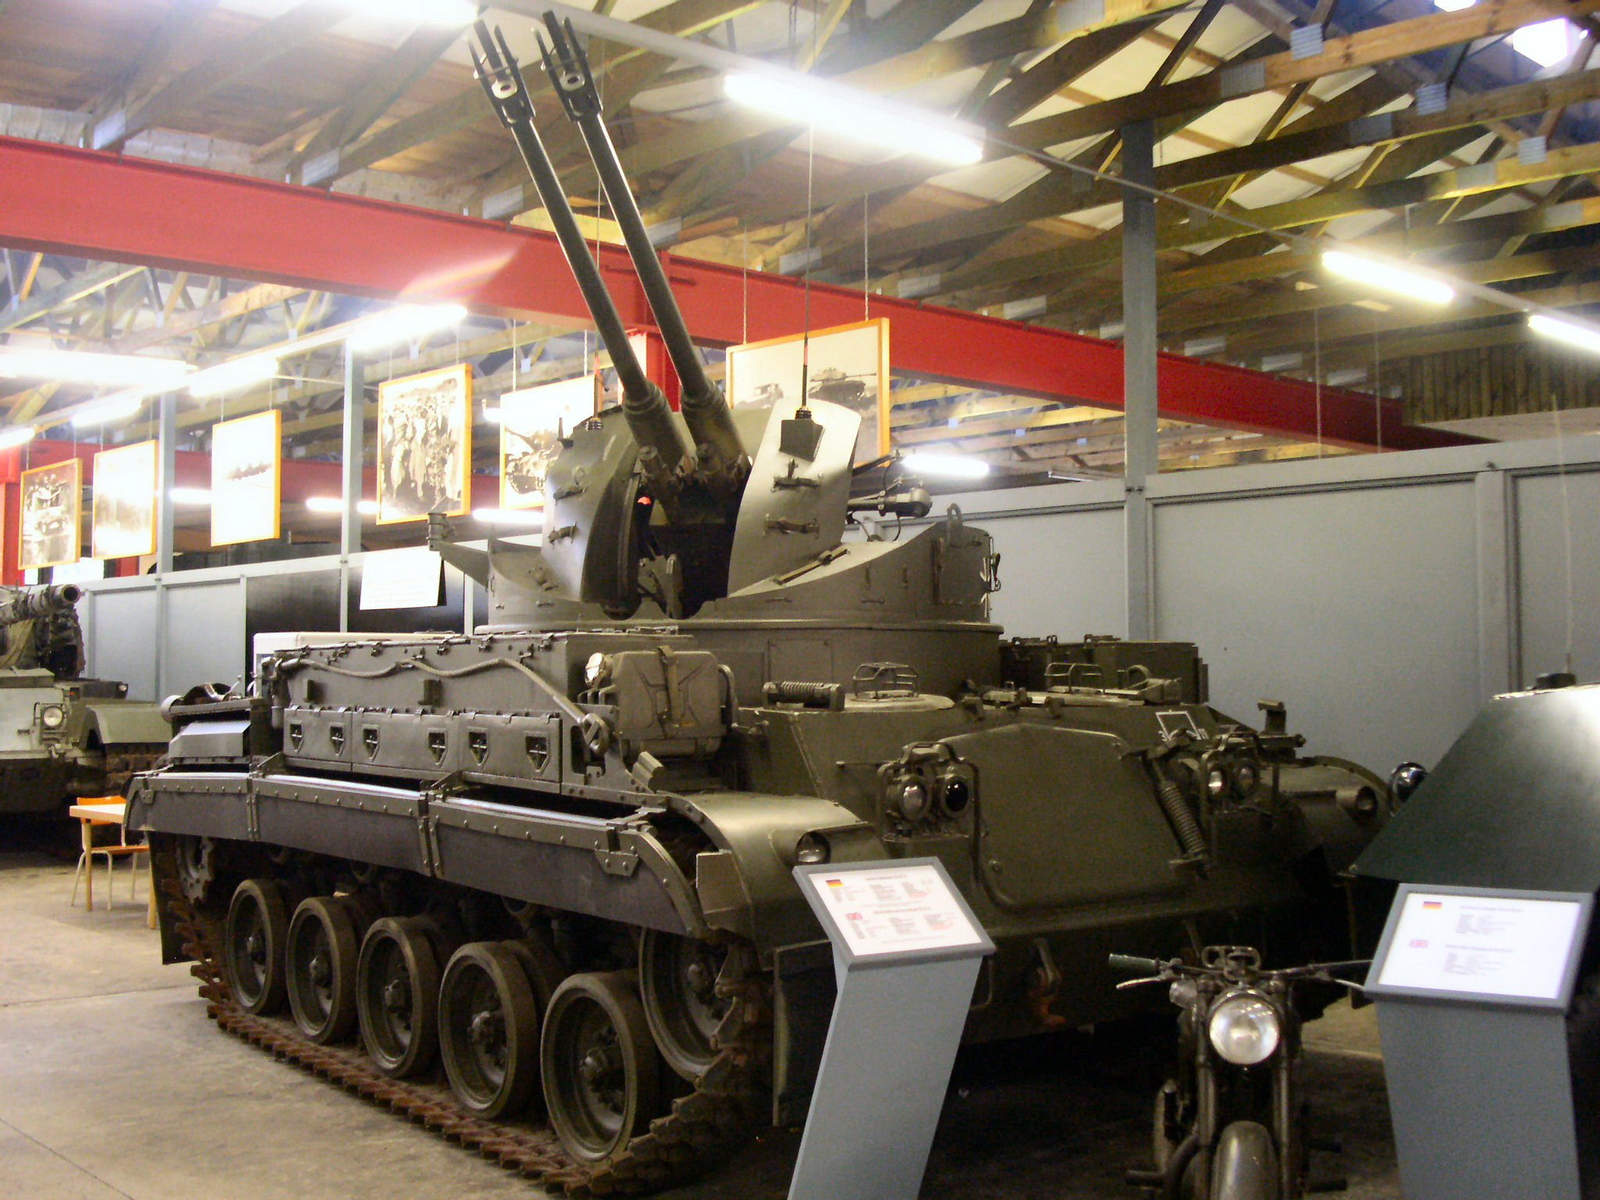 M42 Duster (3)